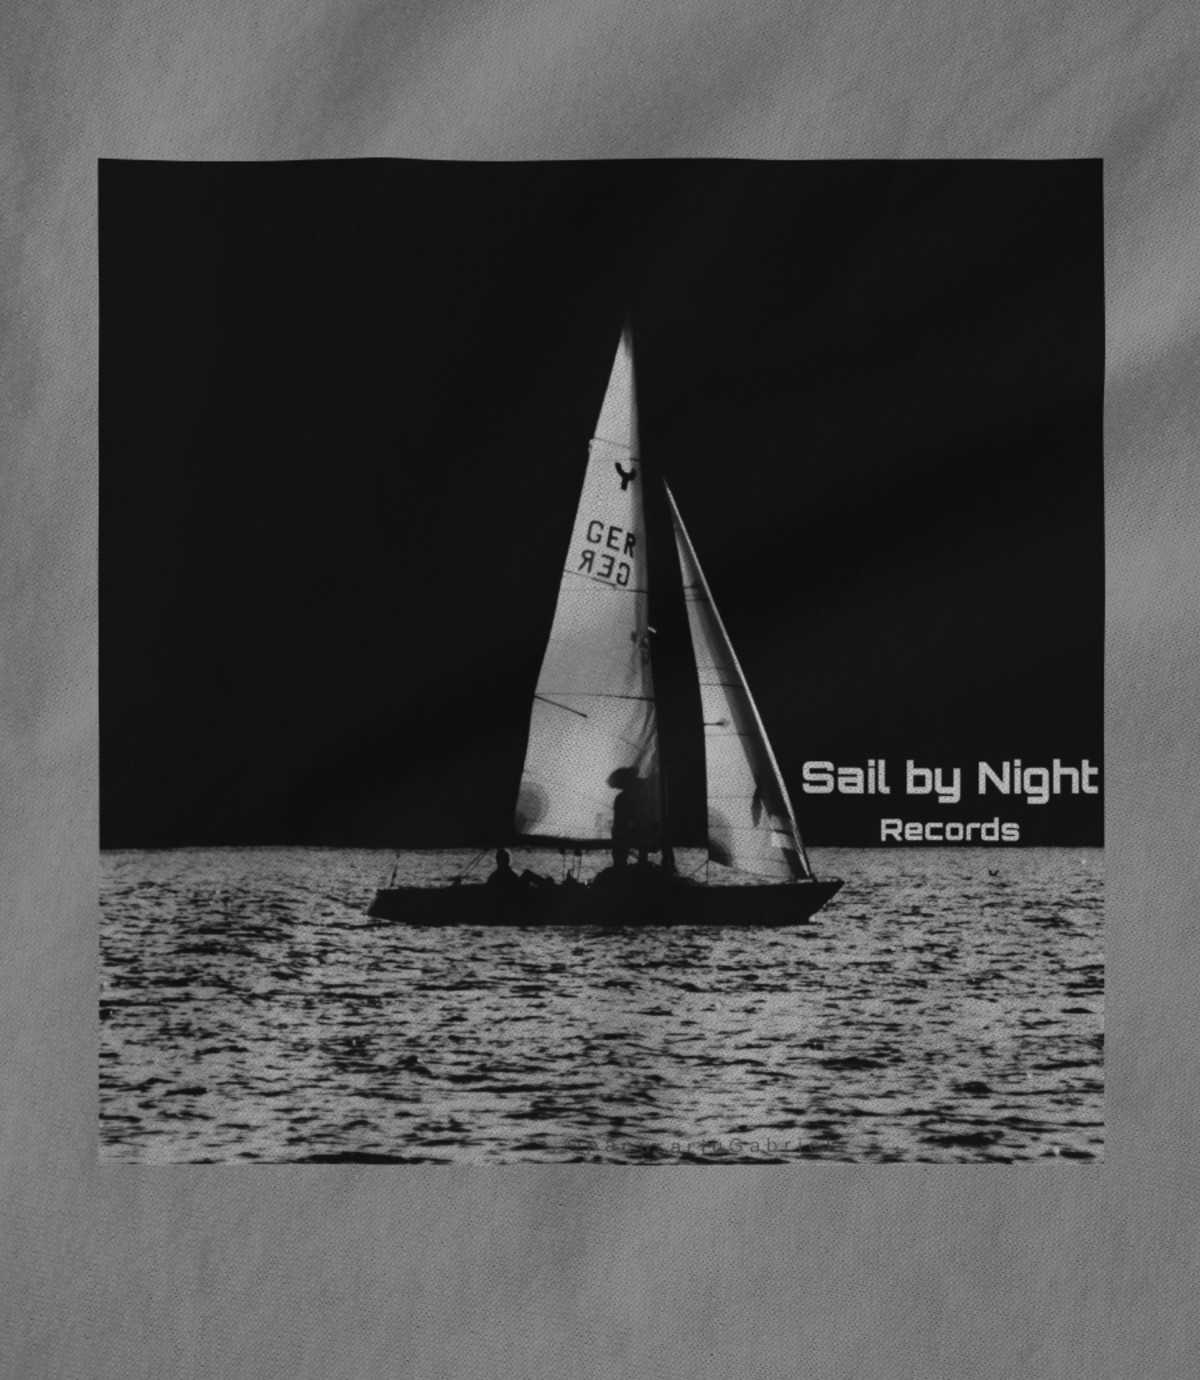 Sail by night sail by night records 1545265148